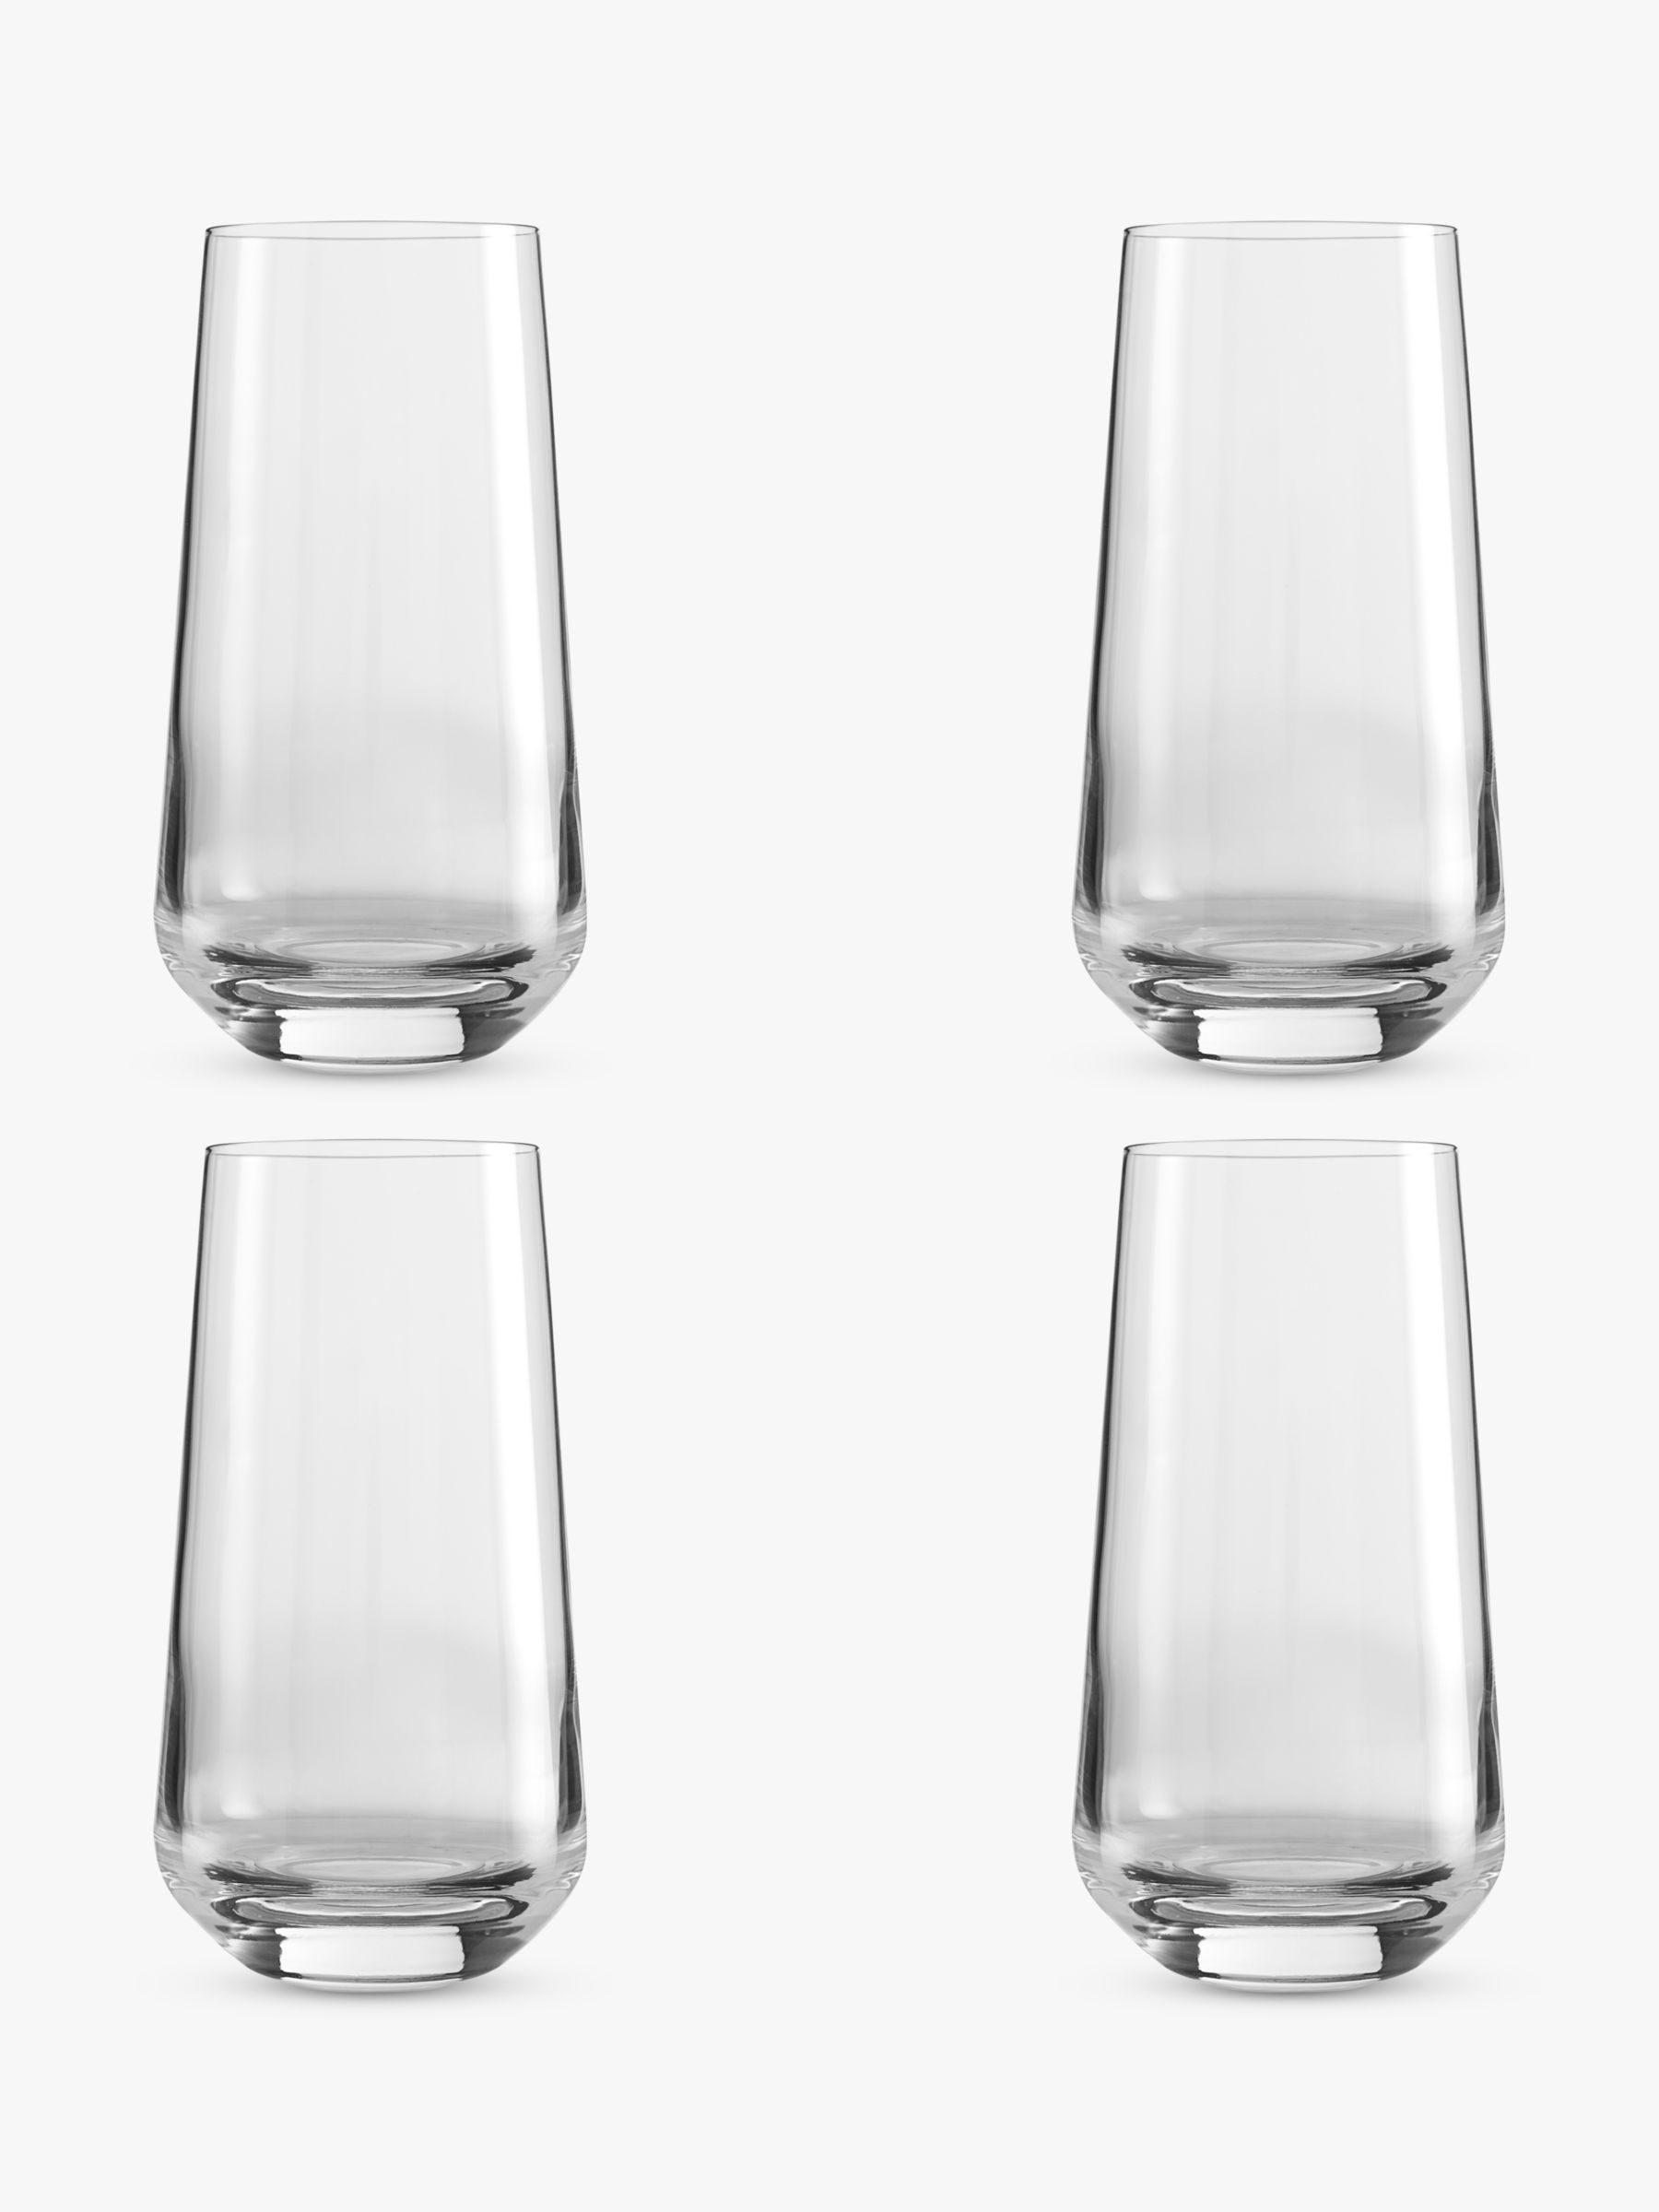 Design Project by John Lewis Design Project by John Lewis No.018 Highball Glasses, 500ml, Clear, Set of 4